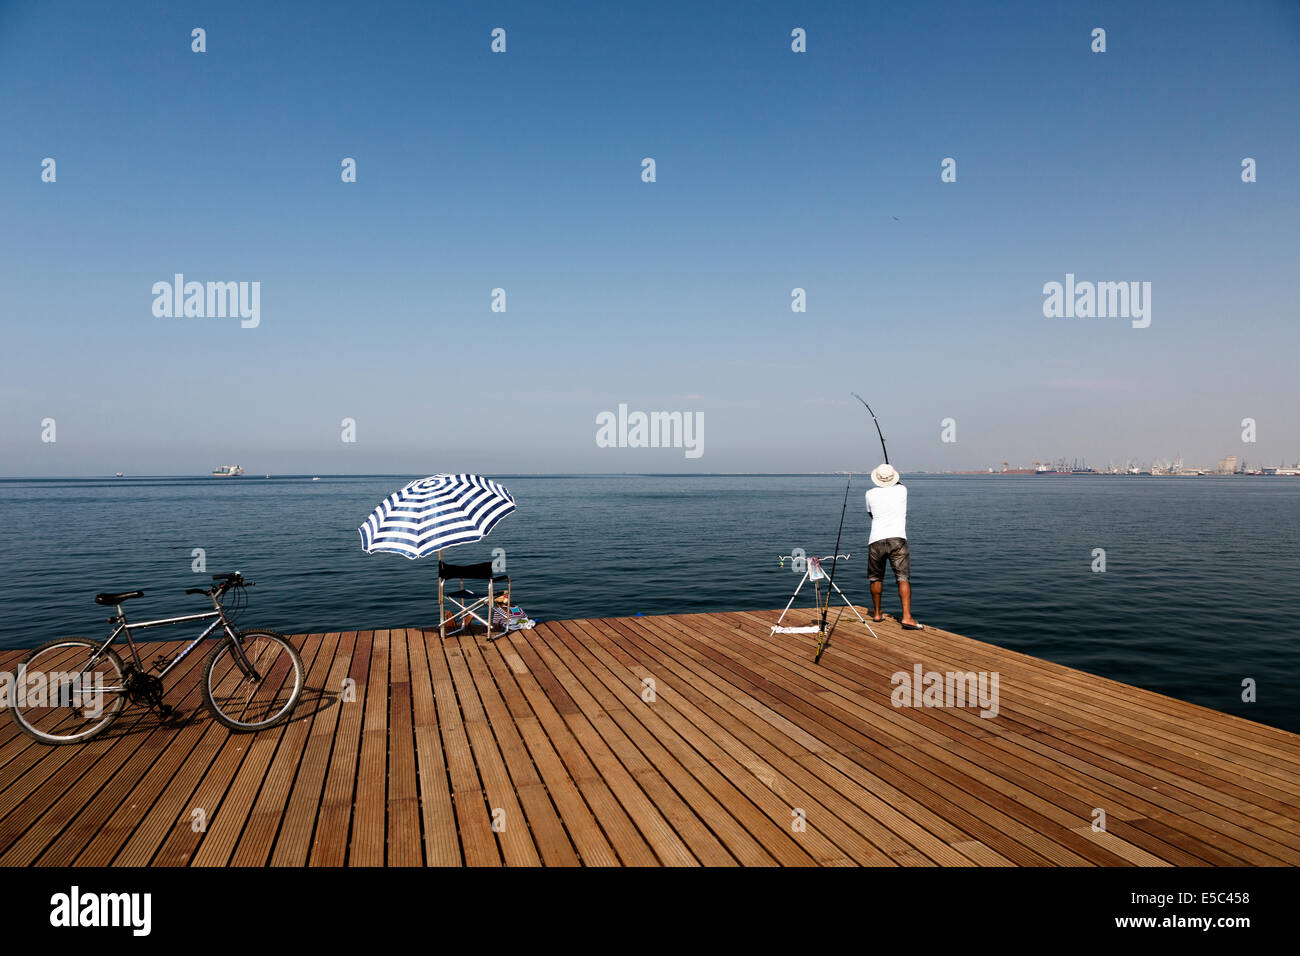 A fisher cast his line at the seafront of Thessaloniki, Greece. - Stock Image